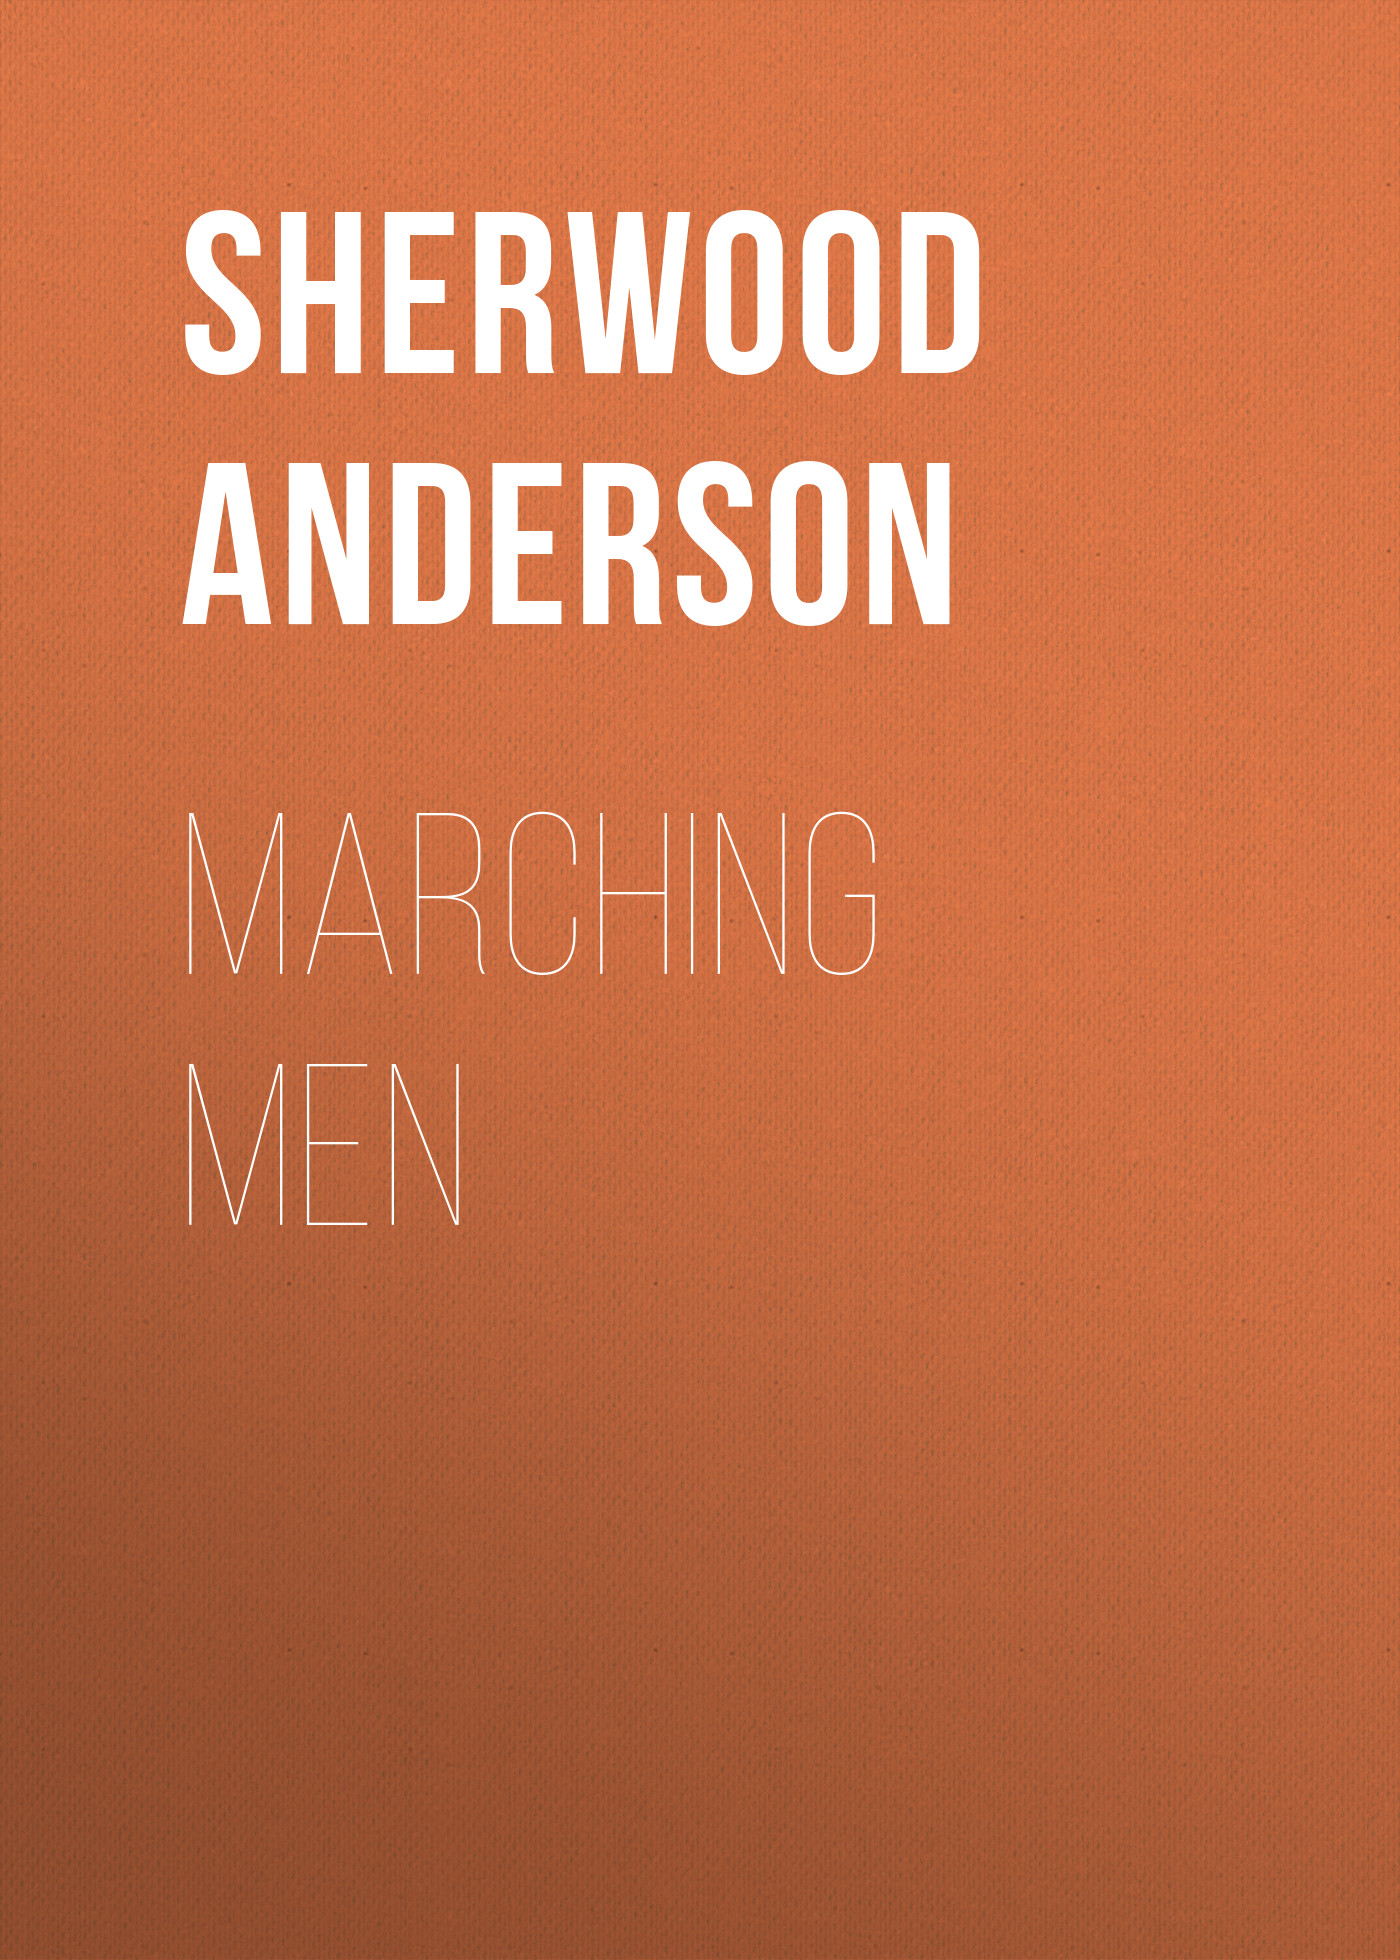 Sherwood Anderson Marching Men